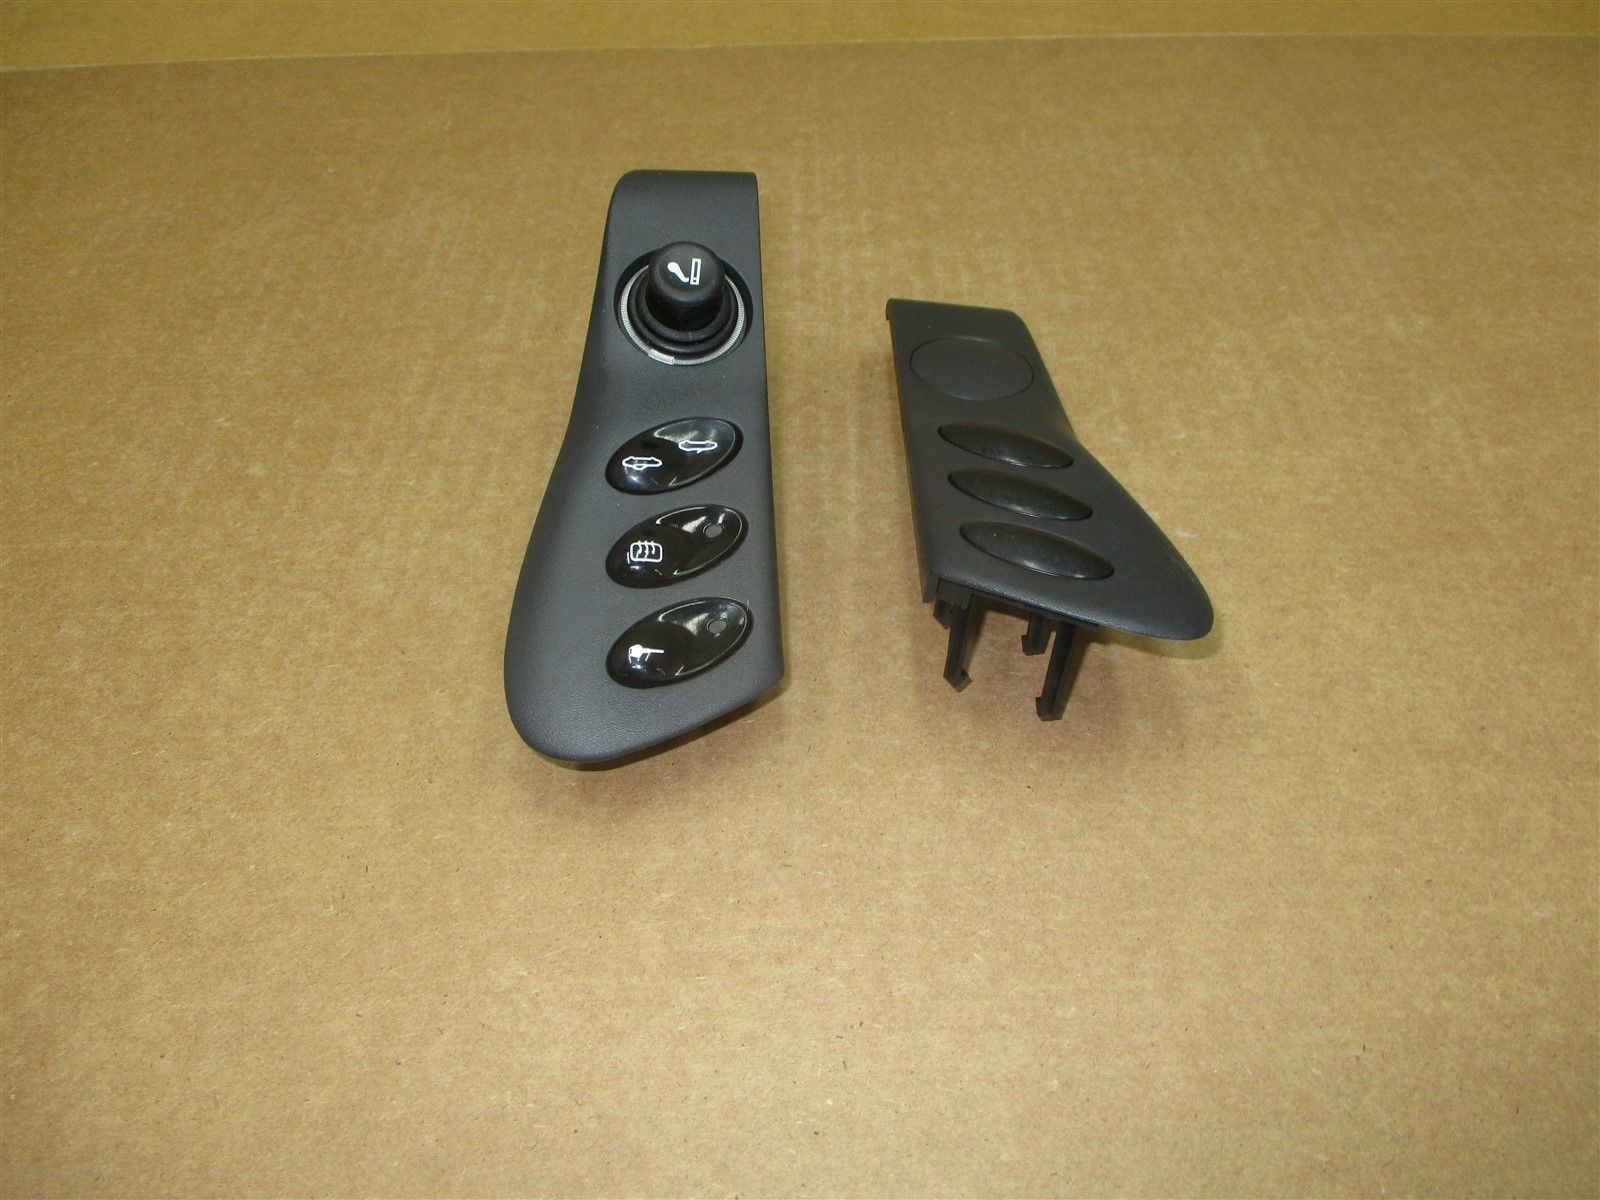 99 Boxster RWD Porsche 986 CONSOLE TRIM SWITCHES 98655223300 98655223400 77,632